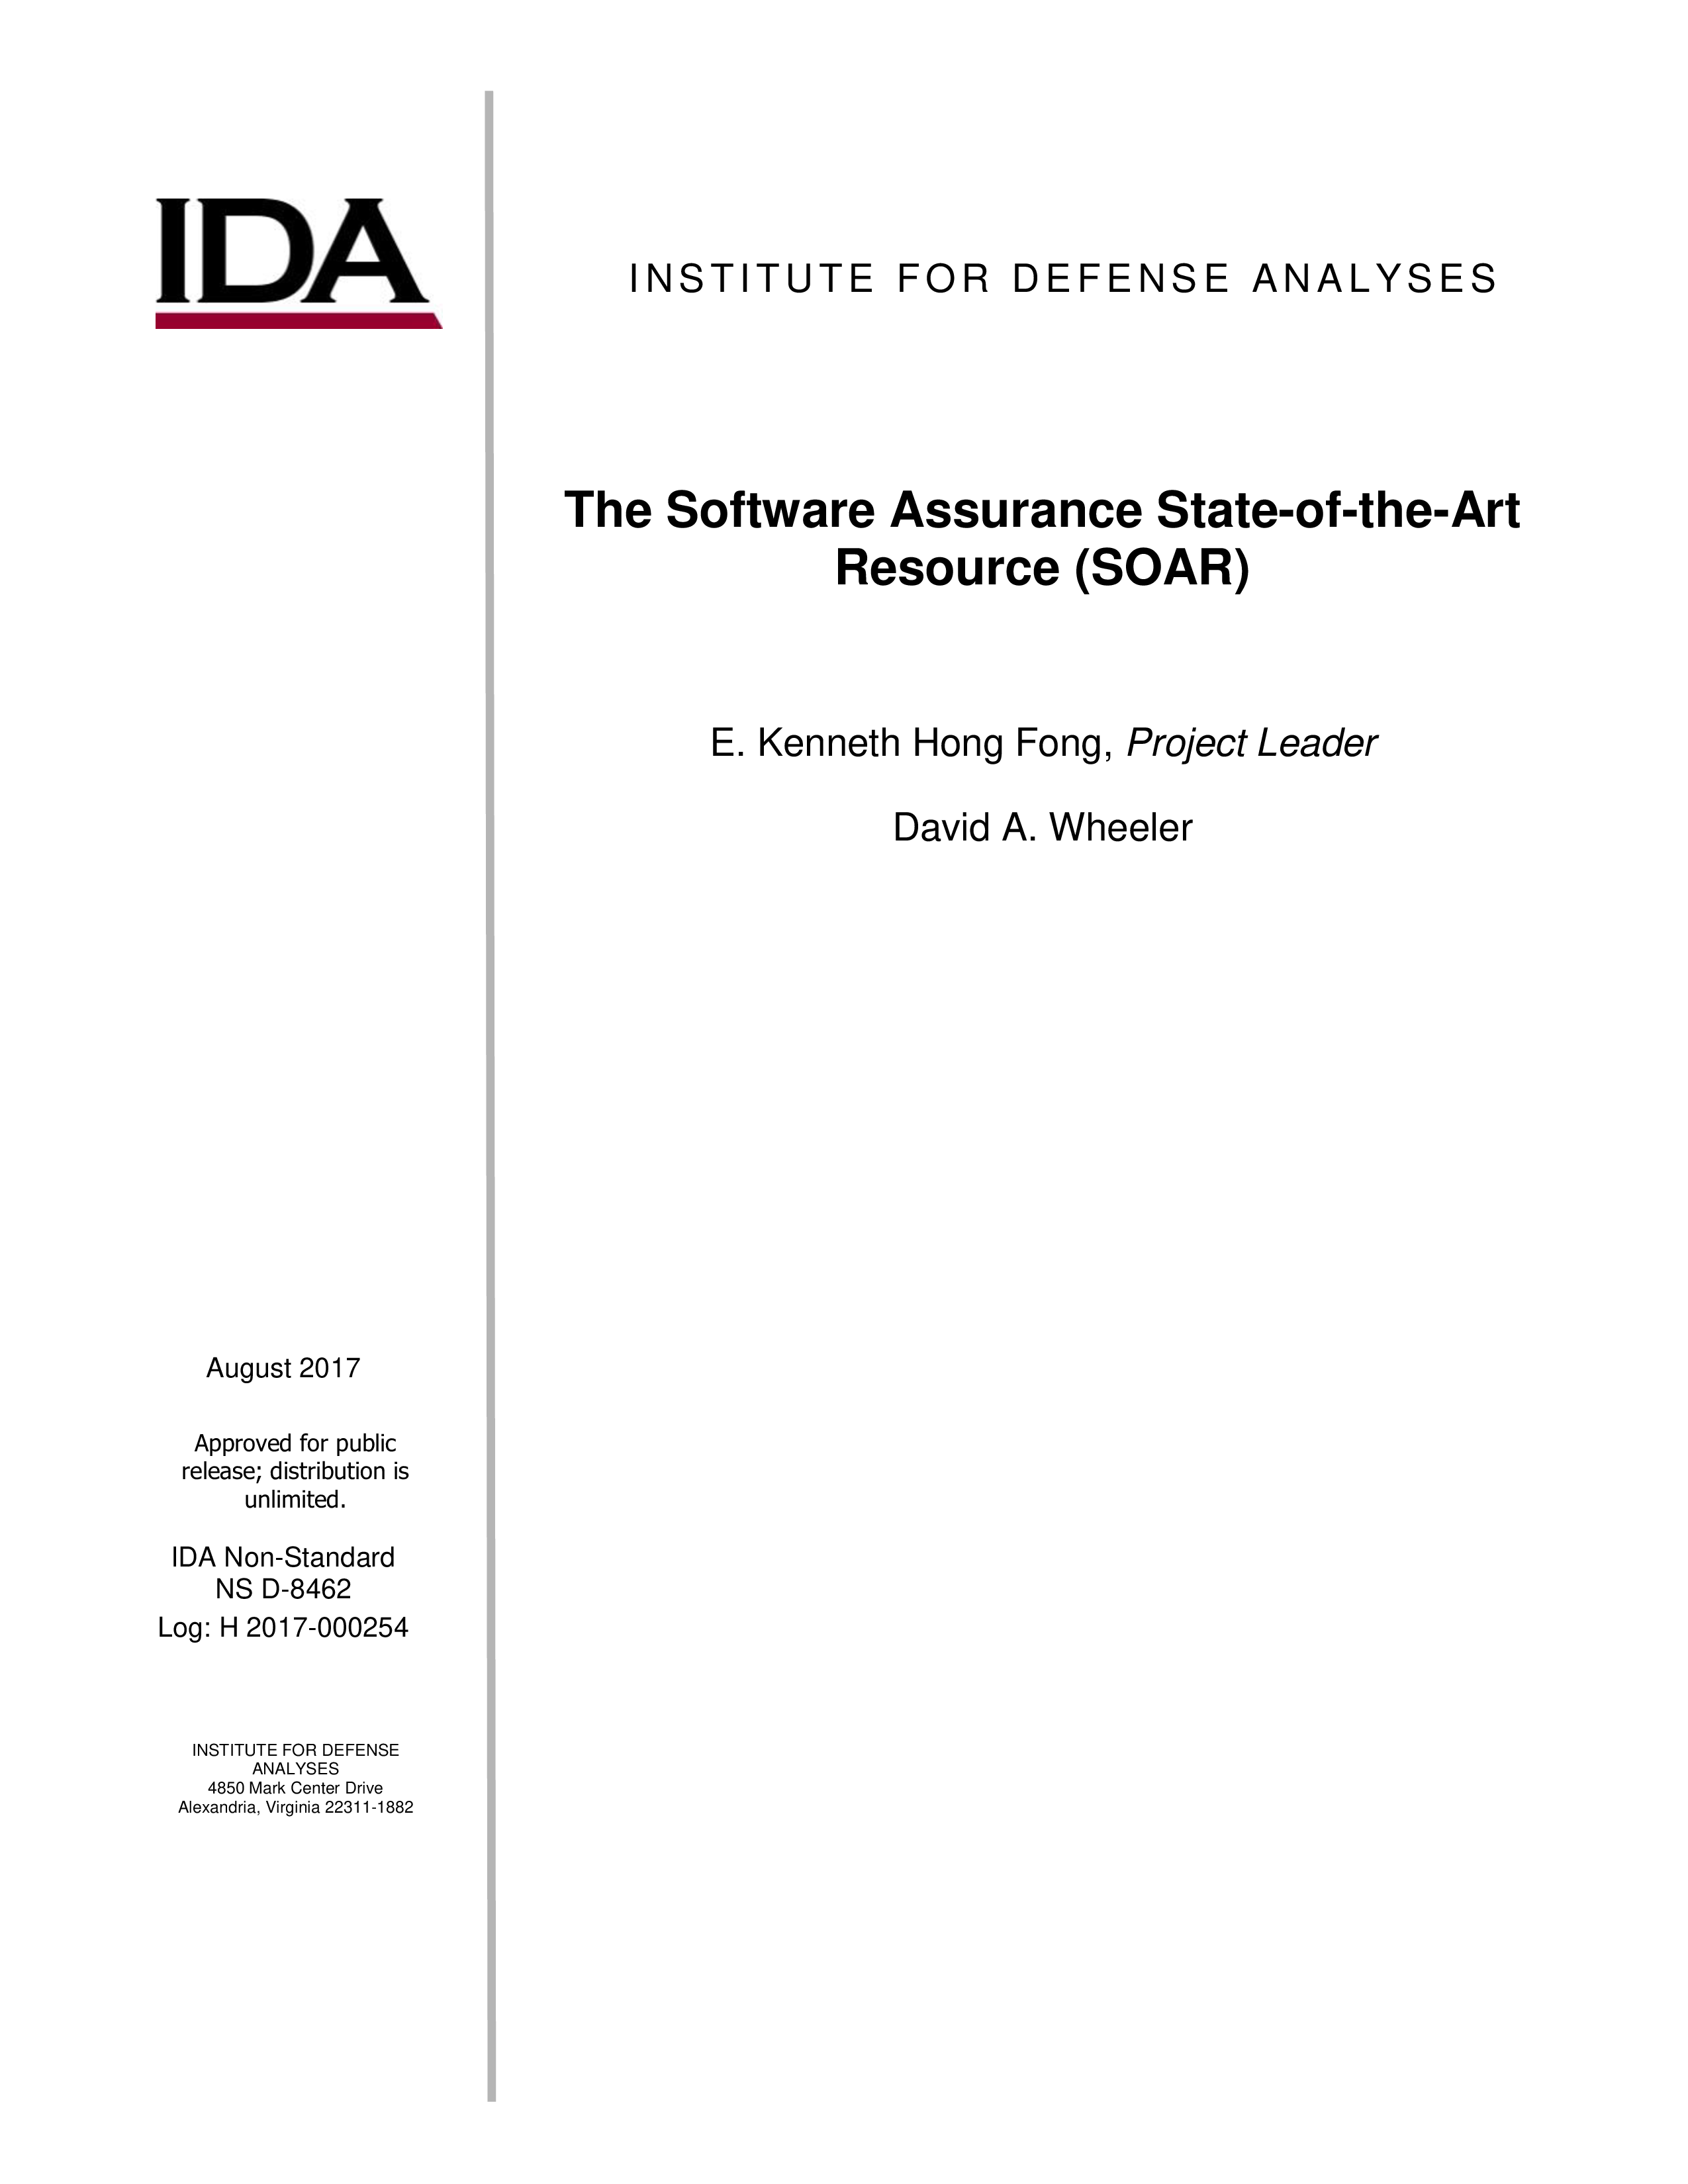 The Software Assurance State-of-the-Art Resource (SOAR)